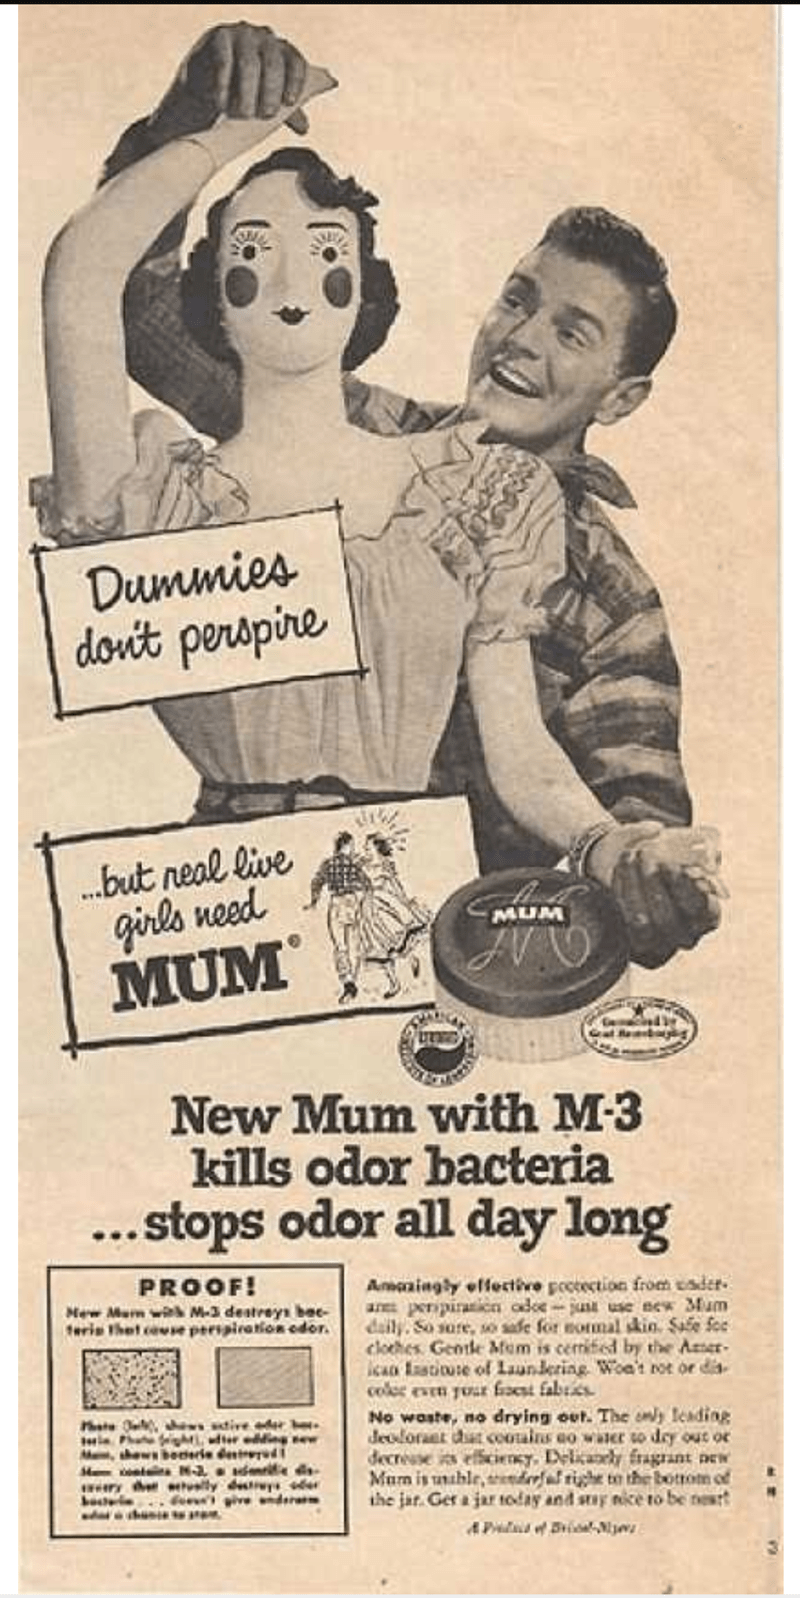 Vintage advertisement - Dummies dovit perspine ...but neal live qirls need MUM MUM New Mum with M3 kills odor bacteria ..stops odor all day long PROOF! Aaingy effective pectection from csder a perspiranica odceju use eew Mum dailySo sure, so safe for notmal skin Se fee dloches Gentle Mem is cerrited by the Aser lcAD stiouse of Lunering Woat rot or da colee even roar fct fabr No waste, no drying oet. The omy leading deoloraet dat cooains eo water so dey out or decrese is escieny. Delicay fragrant